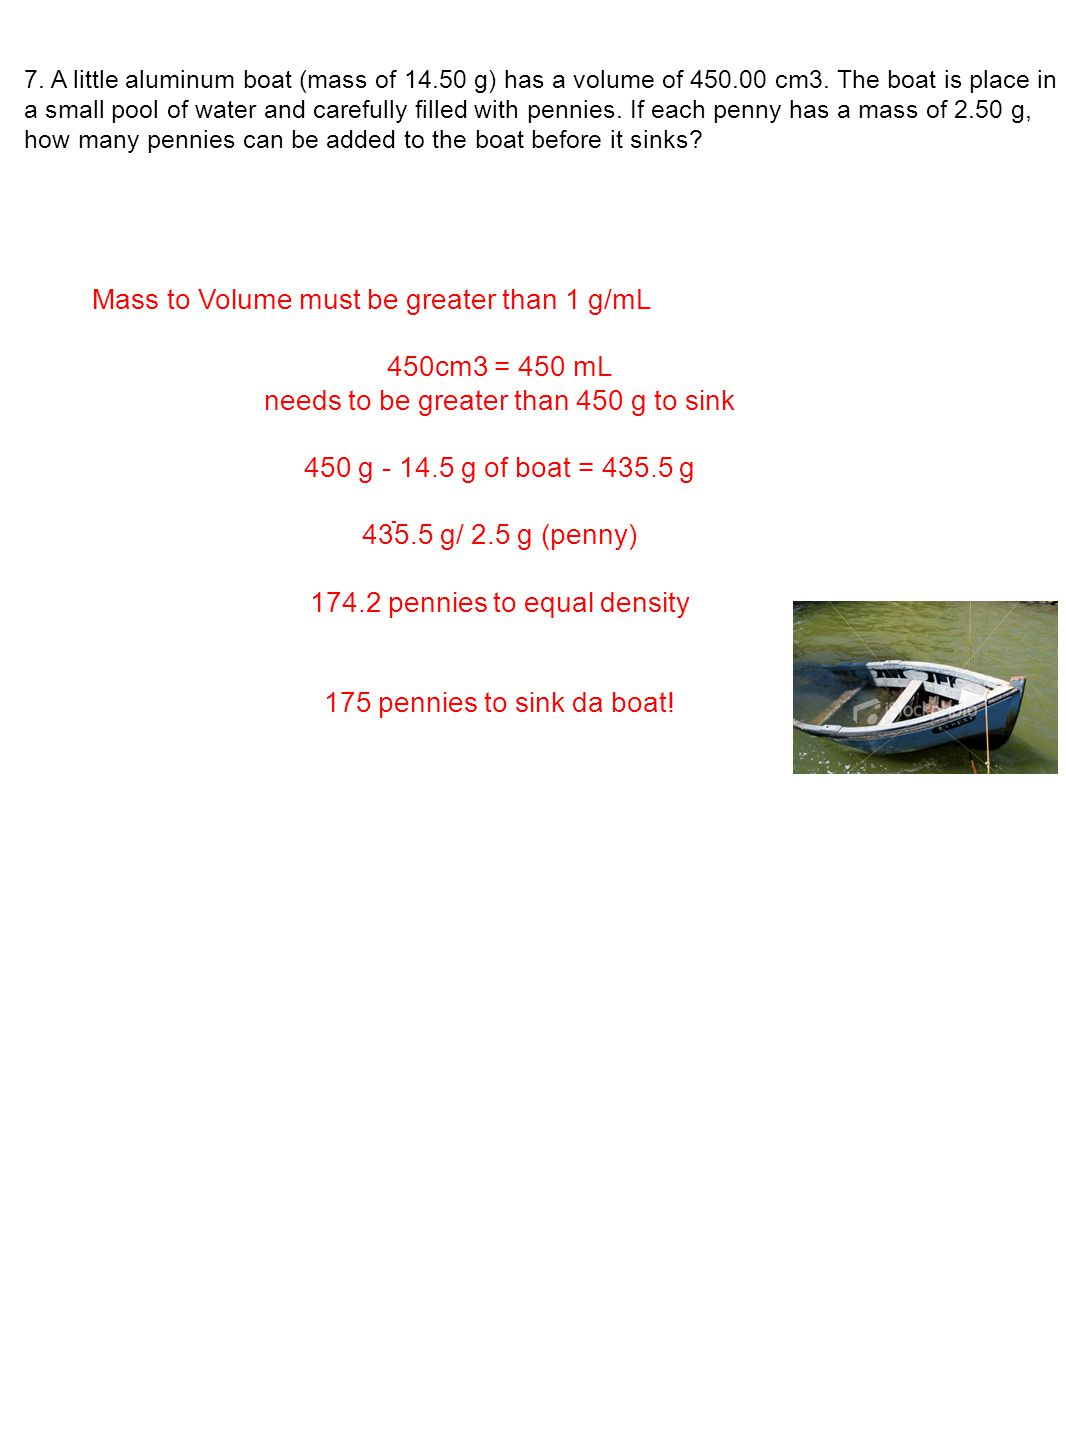 Mass to Volume must be greater than 1 g/mL 450cm3 = 450 mL